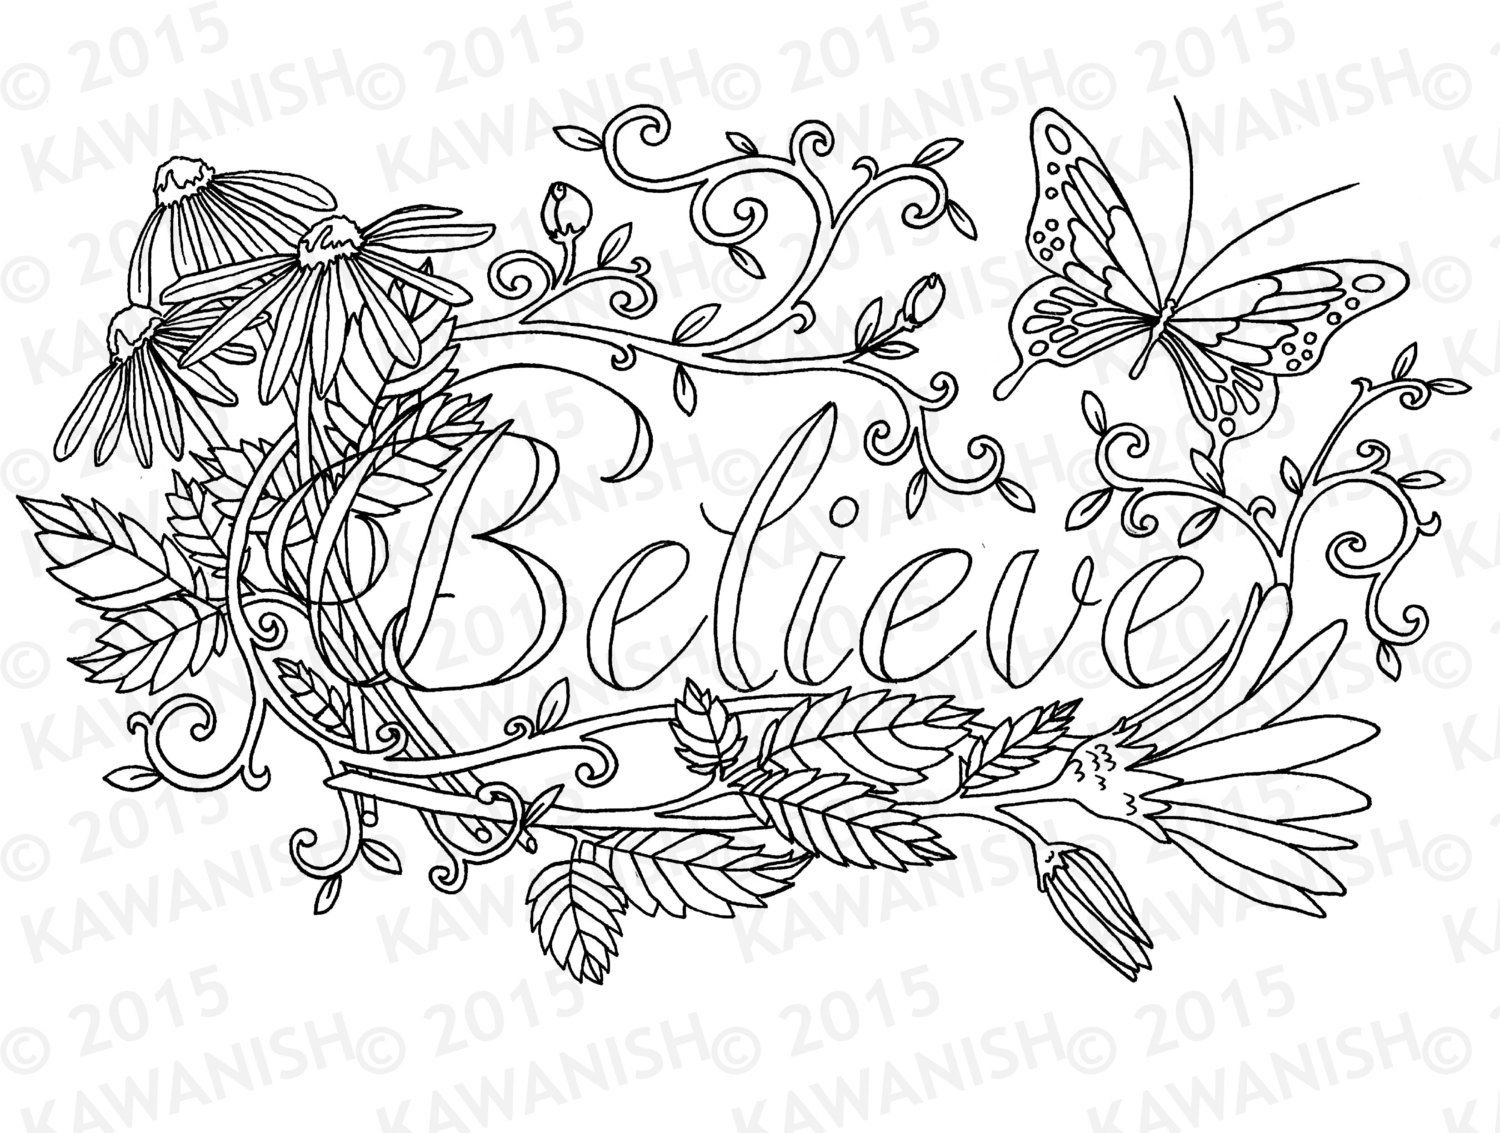 Free coloring pages for adults with quotes - Free Coloring Pages For Adults With Quotes 21